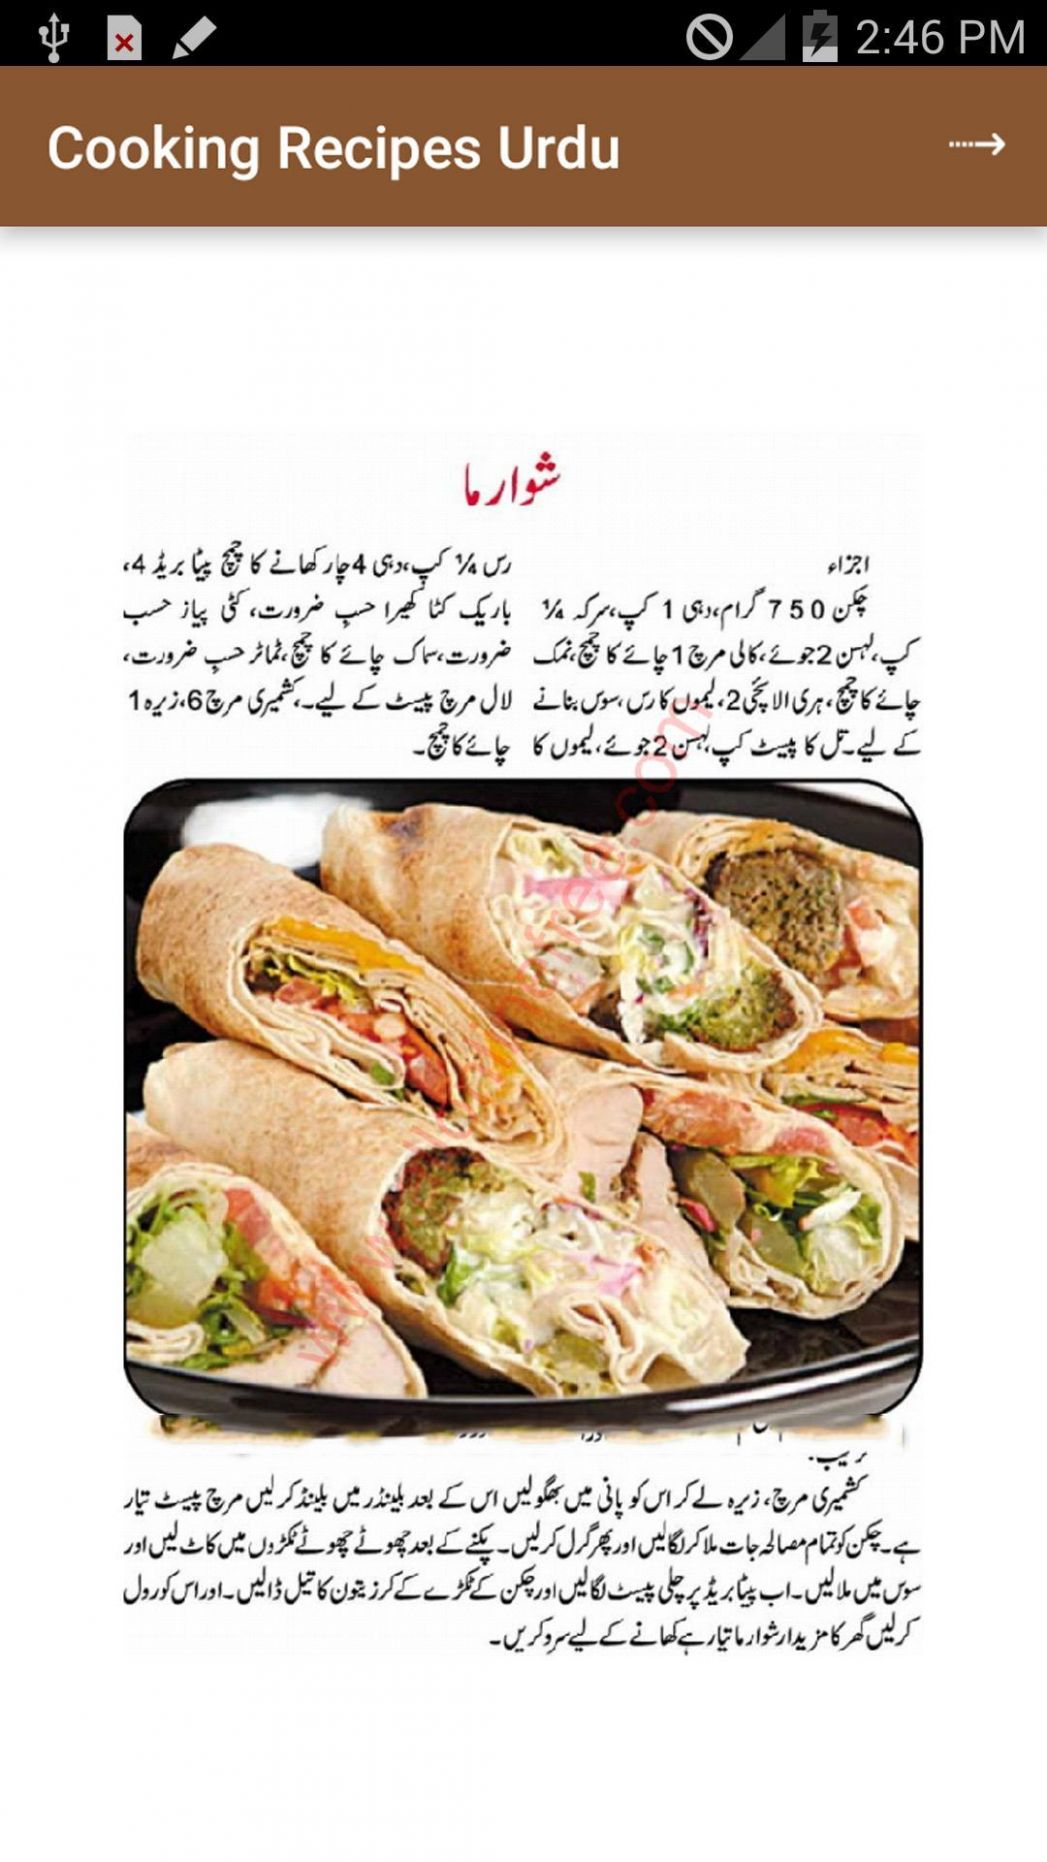 Cooking Recipes in Urdu for Android - APK Download - Cooking Recipes Urdu Download